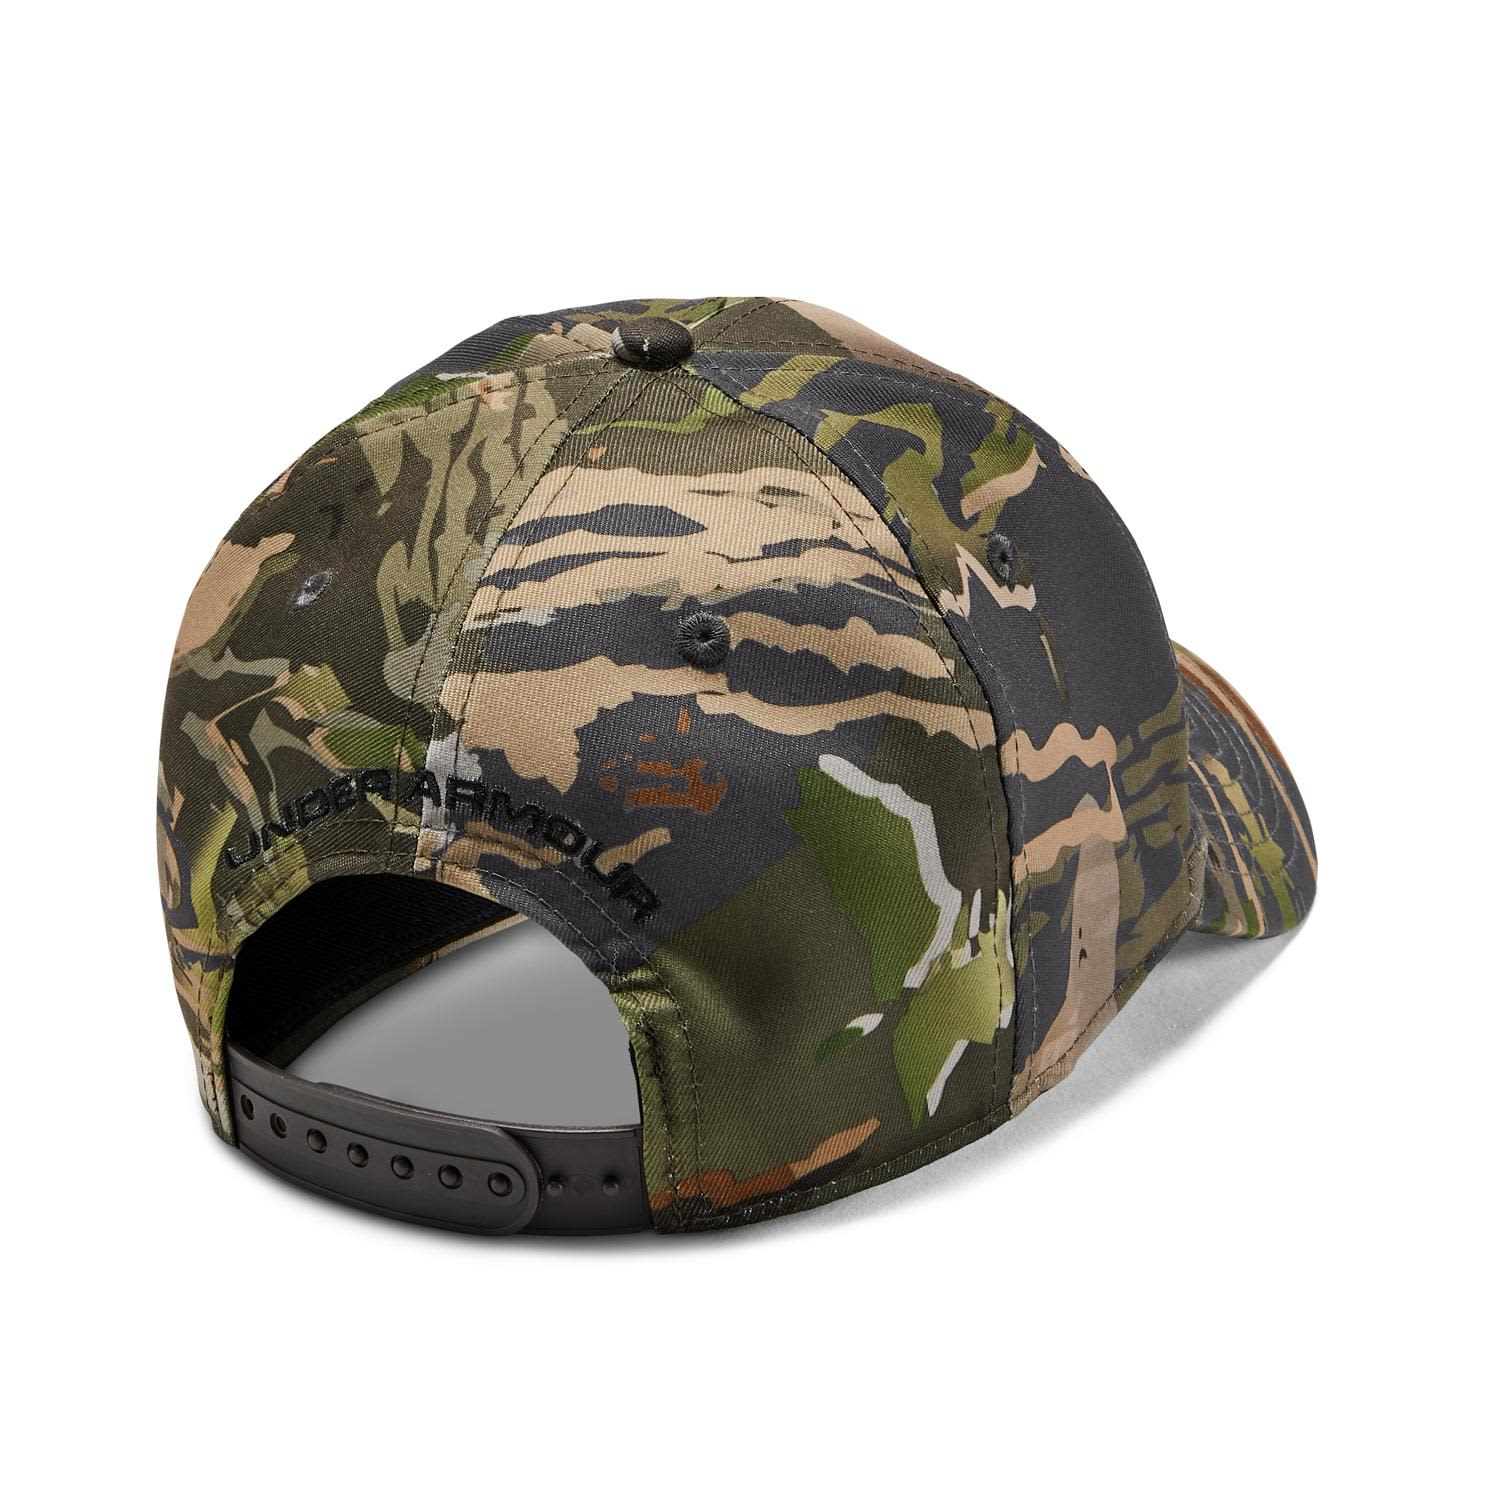 best website cef69 3c2ac HomeApparelMenAccessoriesHeadwear Under Armour Camo Cap 2.0 · Tap to expand  · Tap to expand